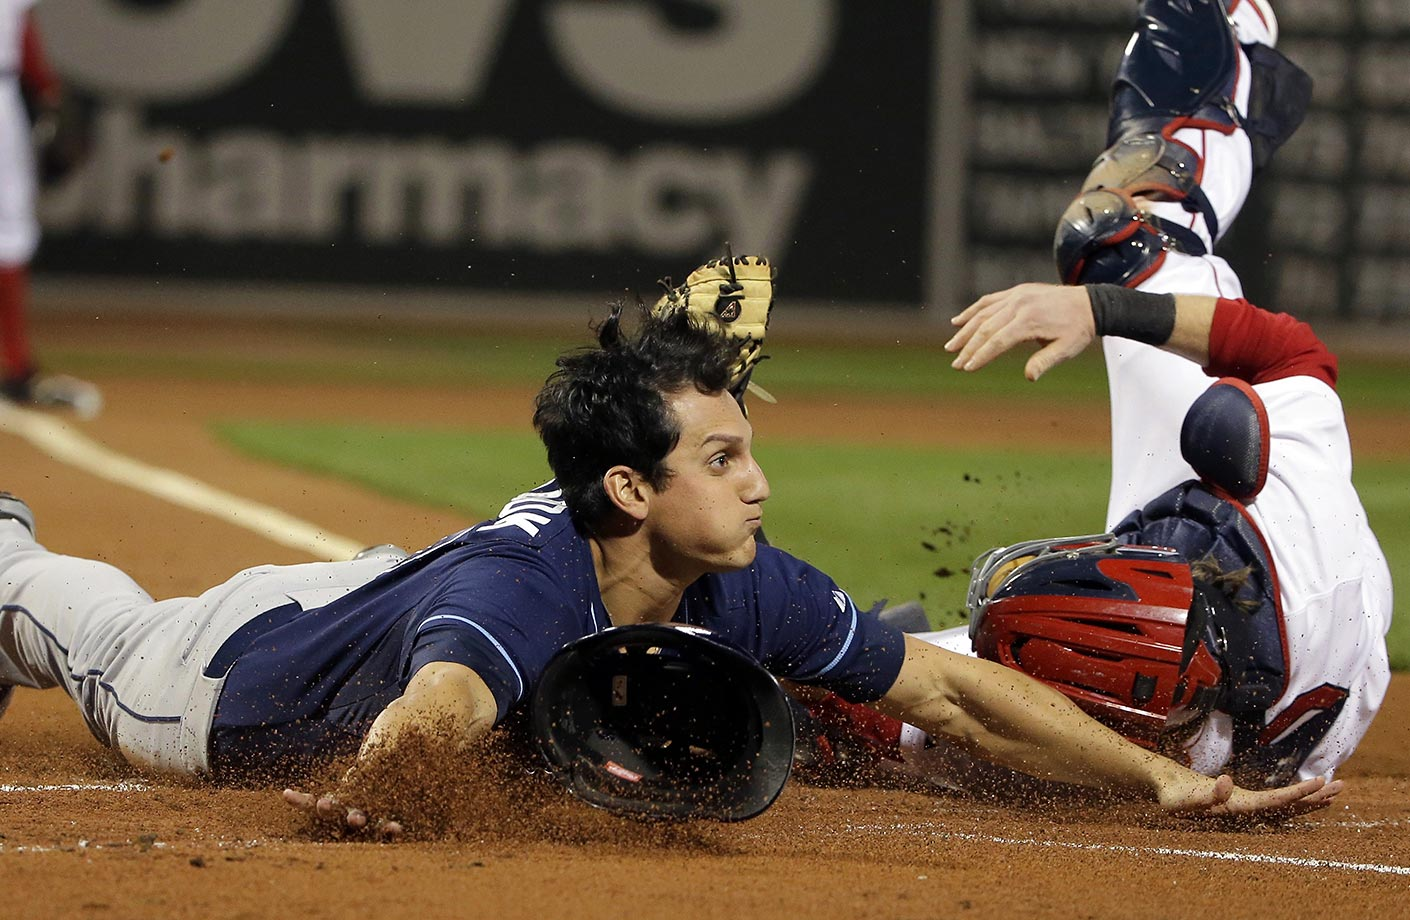 Mikie Mahtook of the Tampa Bay Rays slides in safely against Ryan Hanigan of the Boston Red Sox.